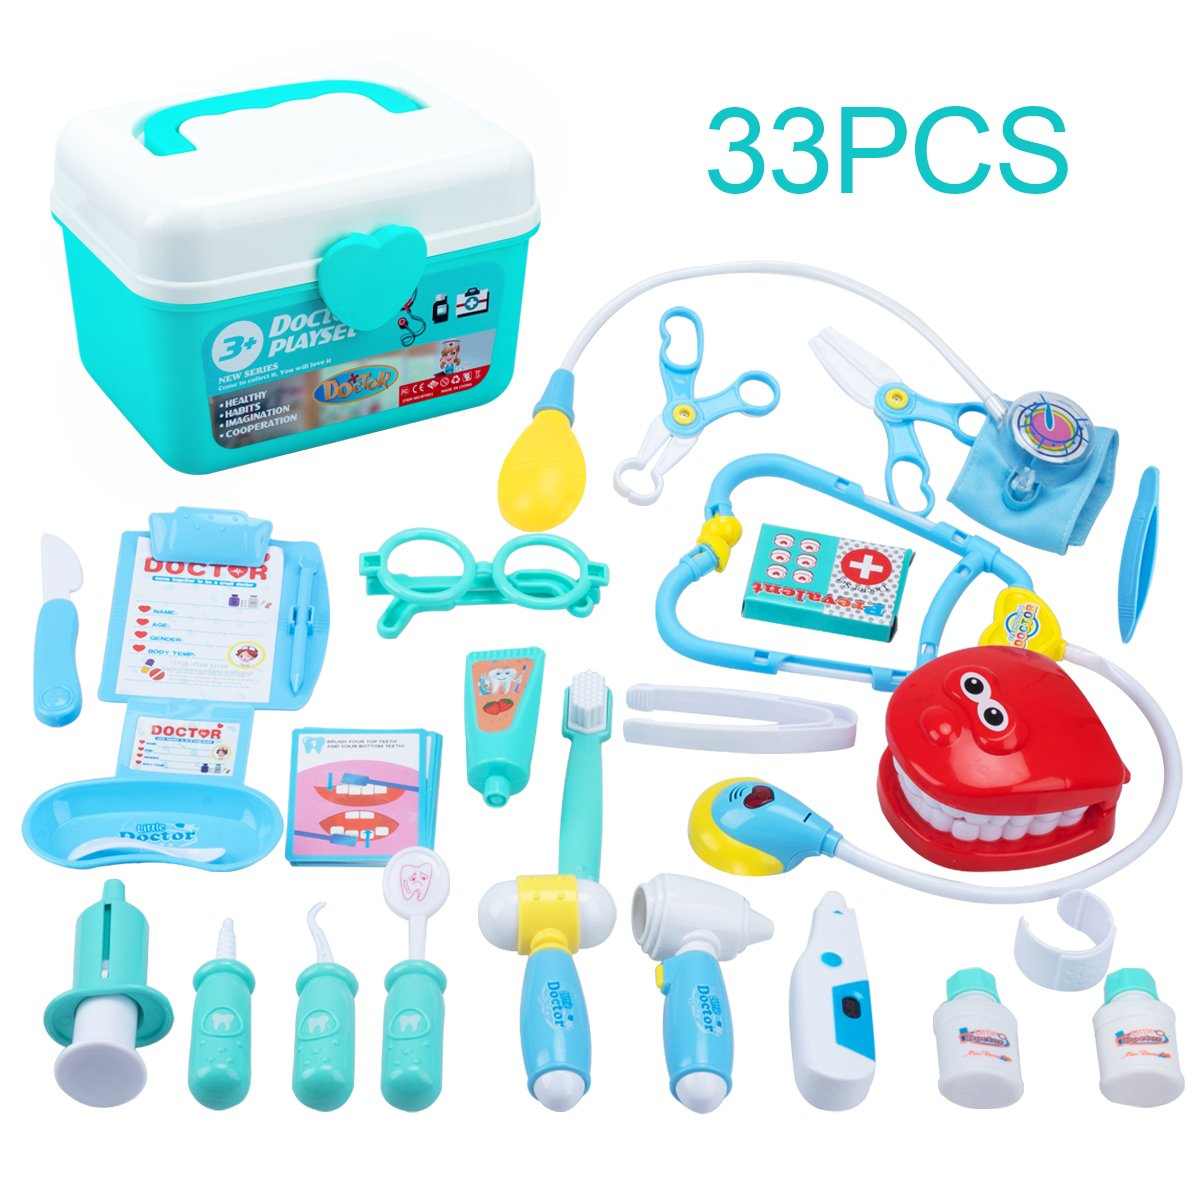 Juboury Kids Doctor Kit 33 Pieces Toy Medical Kits Pretend-n-Play Dentist Medical Kit with Electronic Stethoscope for Kids, School Classroom, Easter Stuffers, Party and Role Play by Juboury